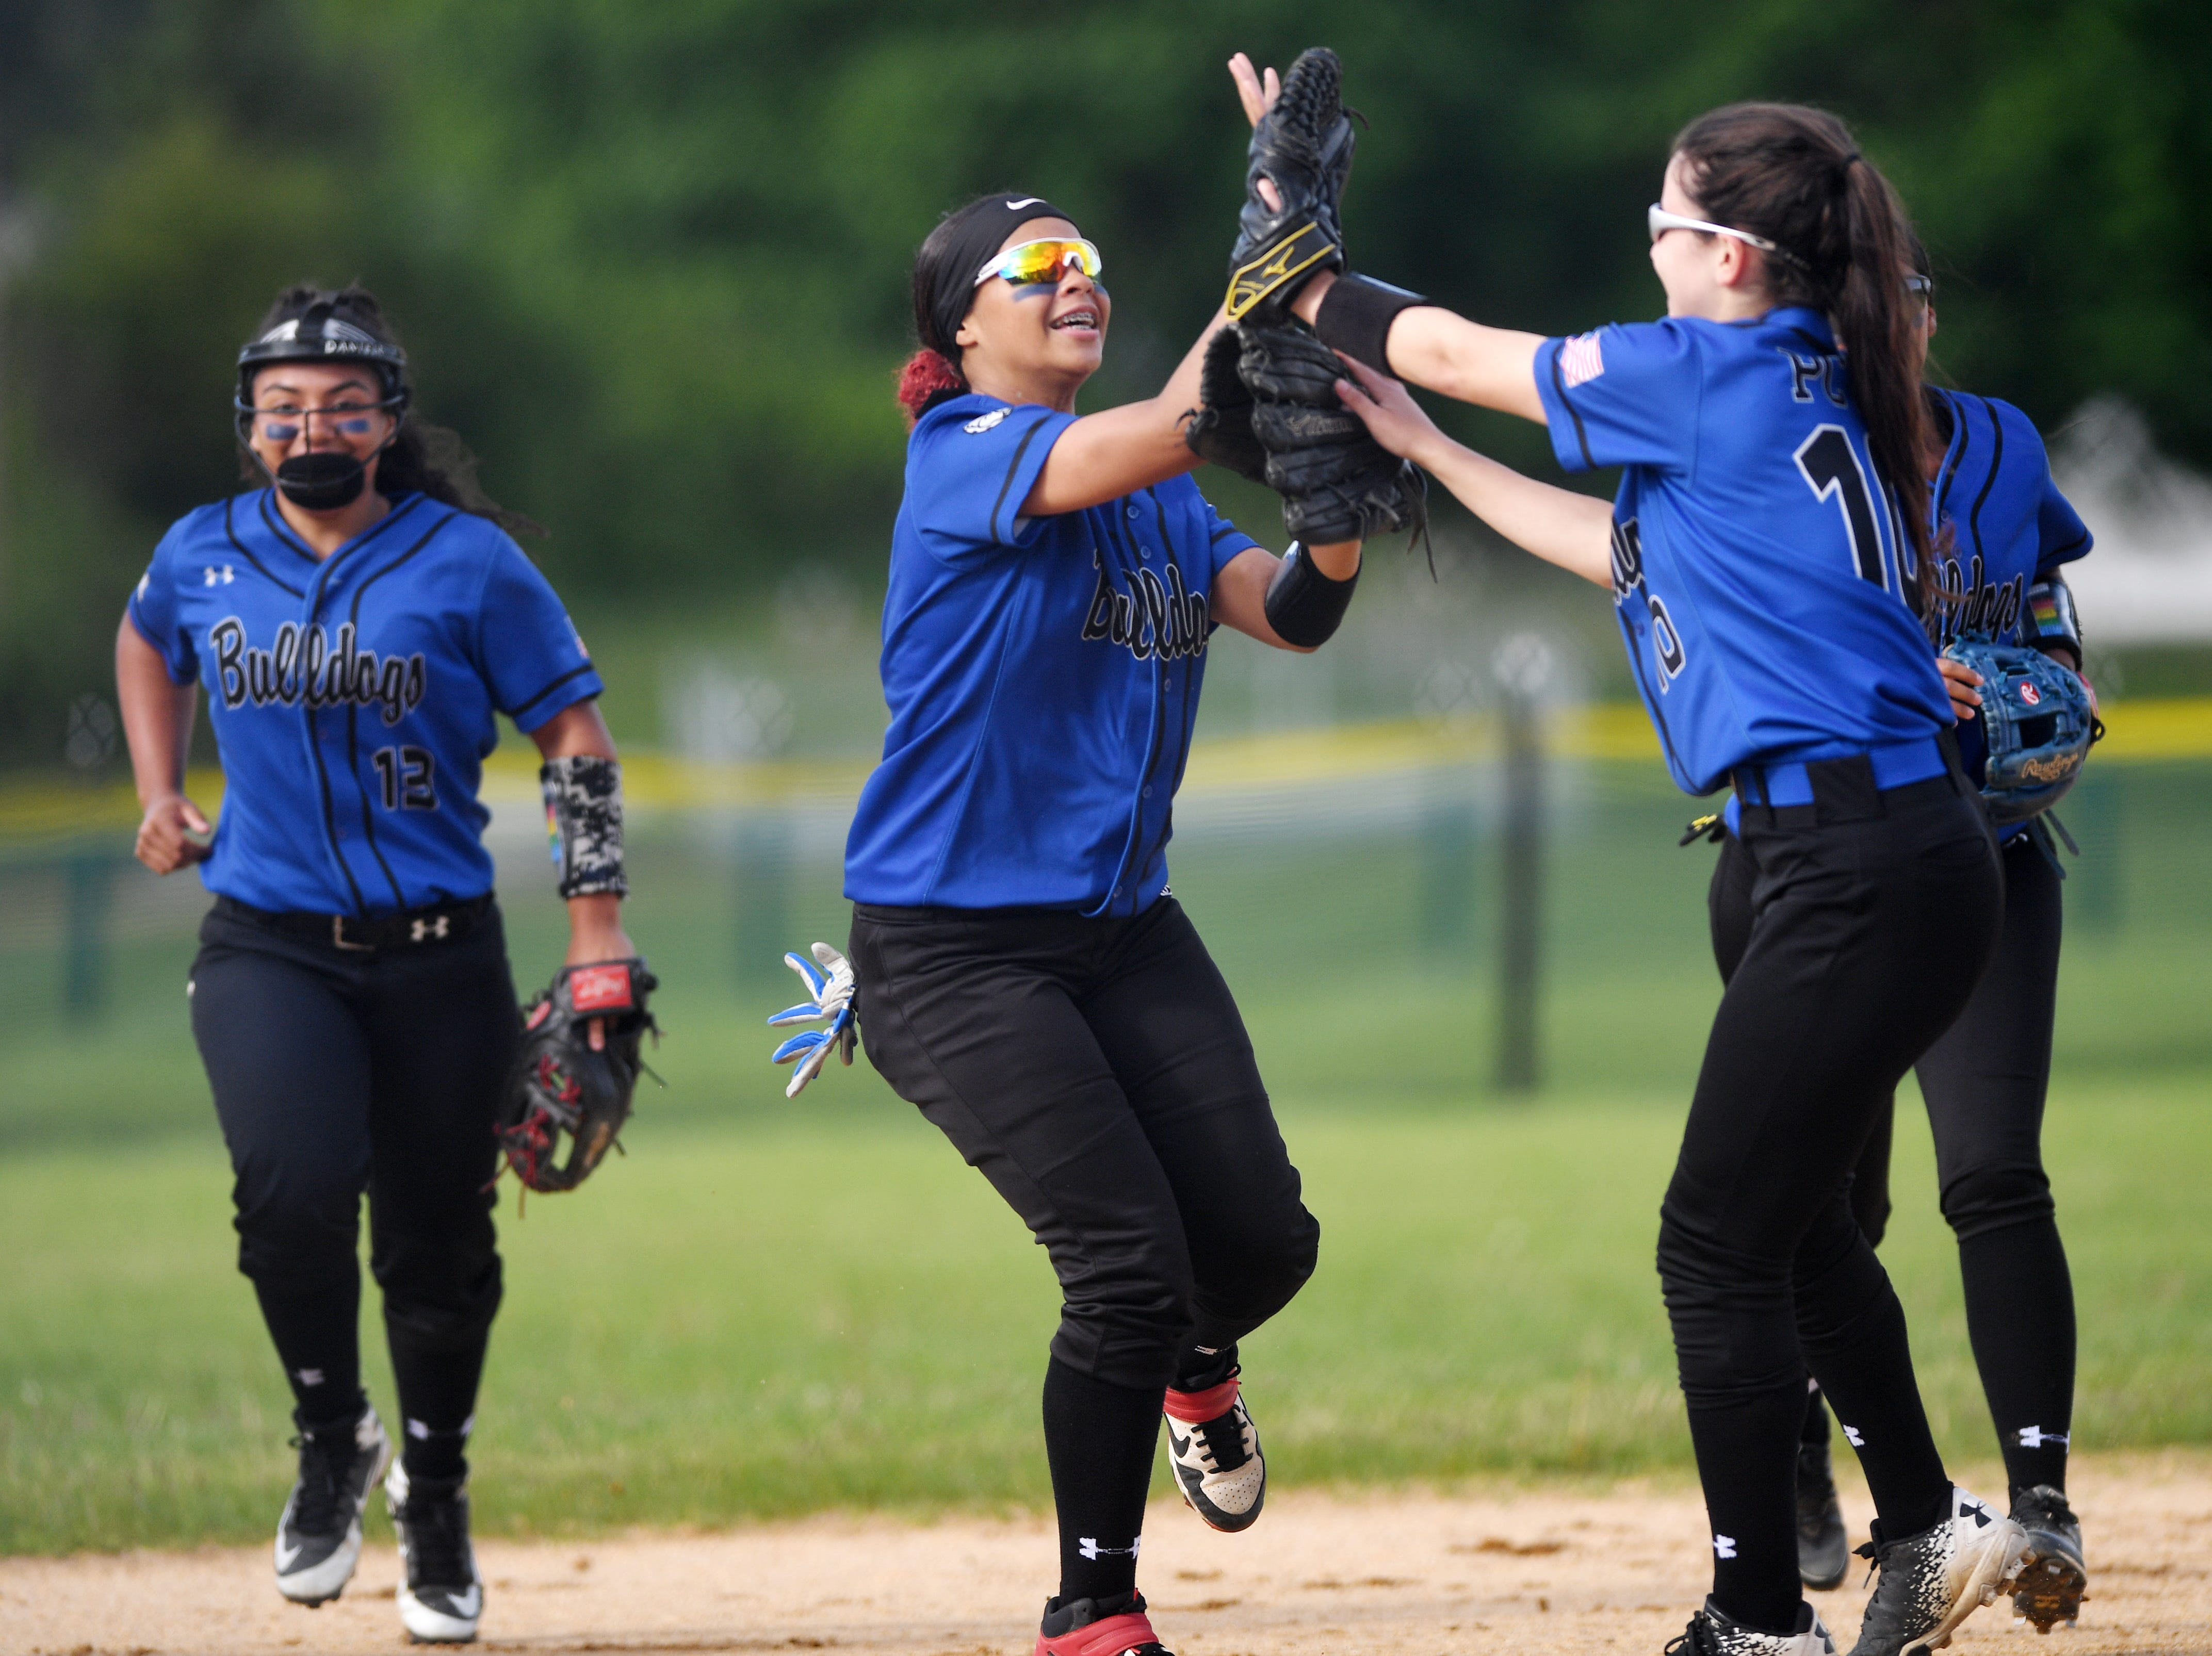 Passaic County Technical Institute vs. West Milford in the Passaic County Tournament softball final at Wayne Hills High School on Wednesday, May 15, 2019. PCTI  #1 Alana Roberts celebrates after making a catch in the outfield. (right) PCTI #10 Alexa Conklin.